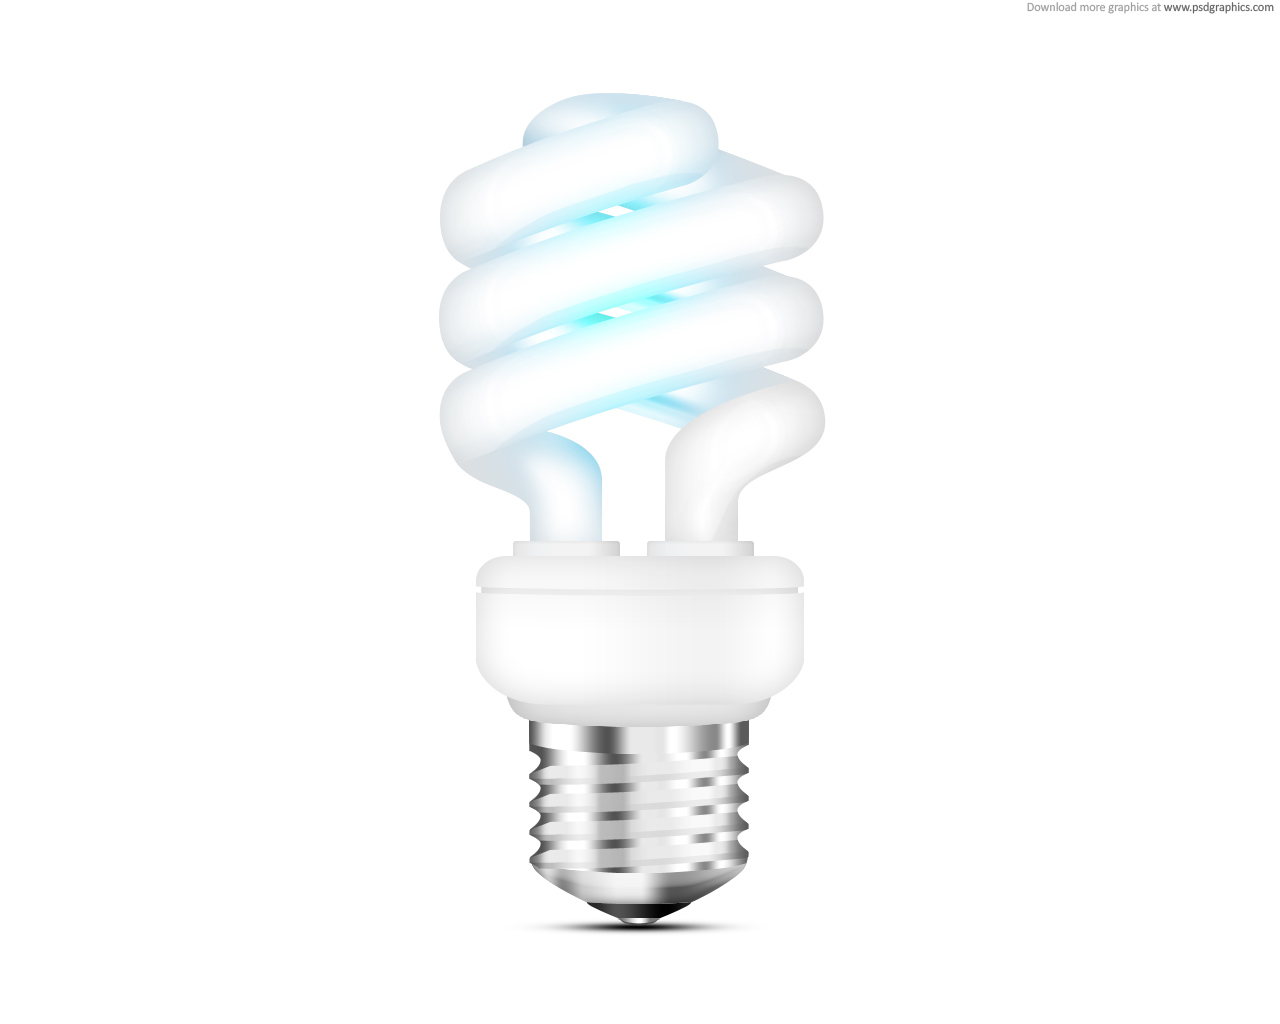 Fluorescent light bulb icon psd